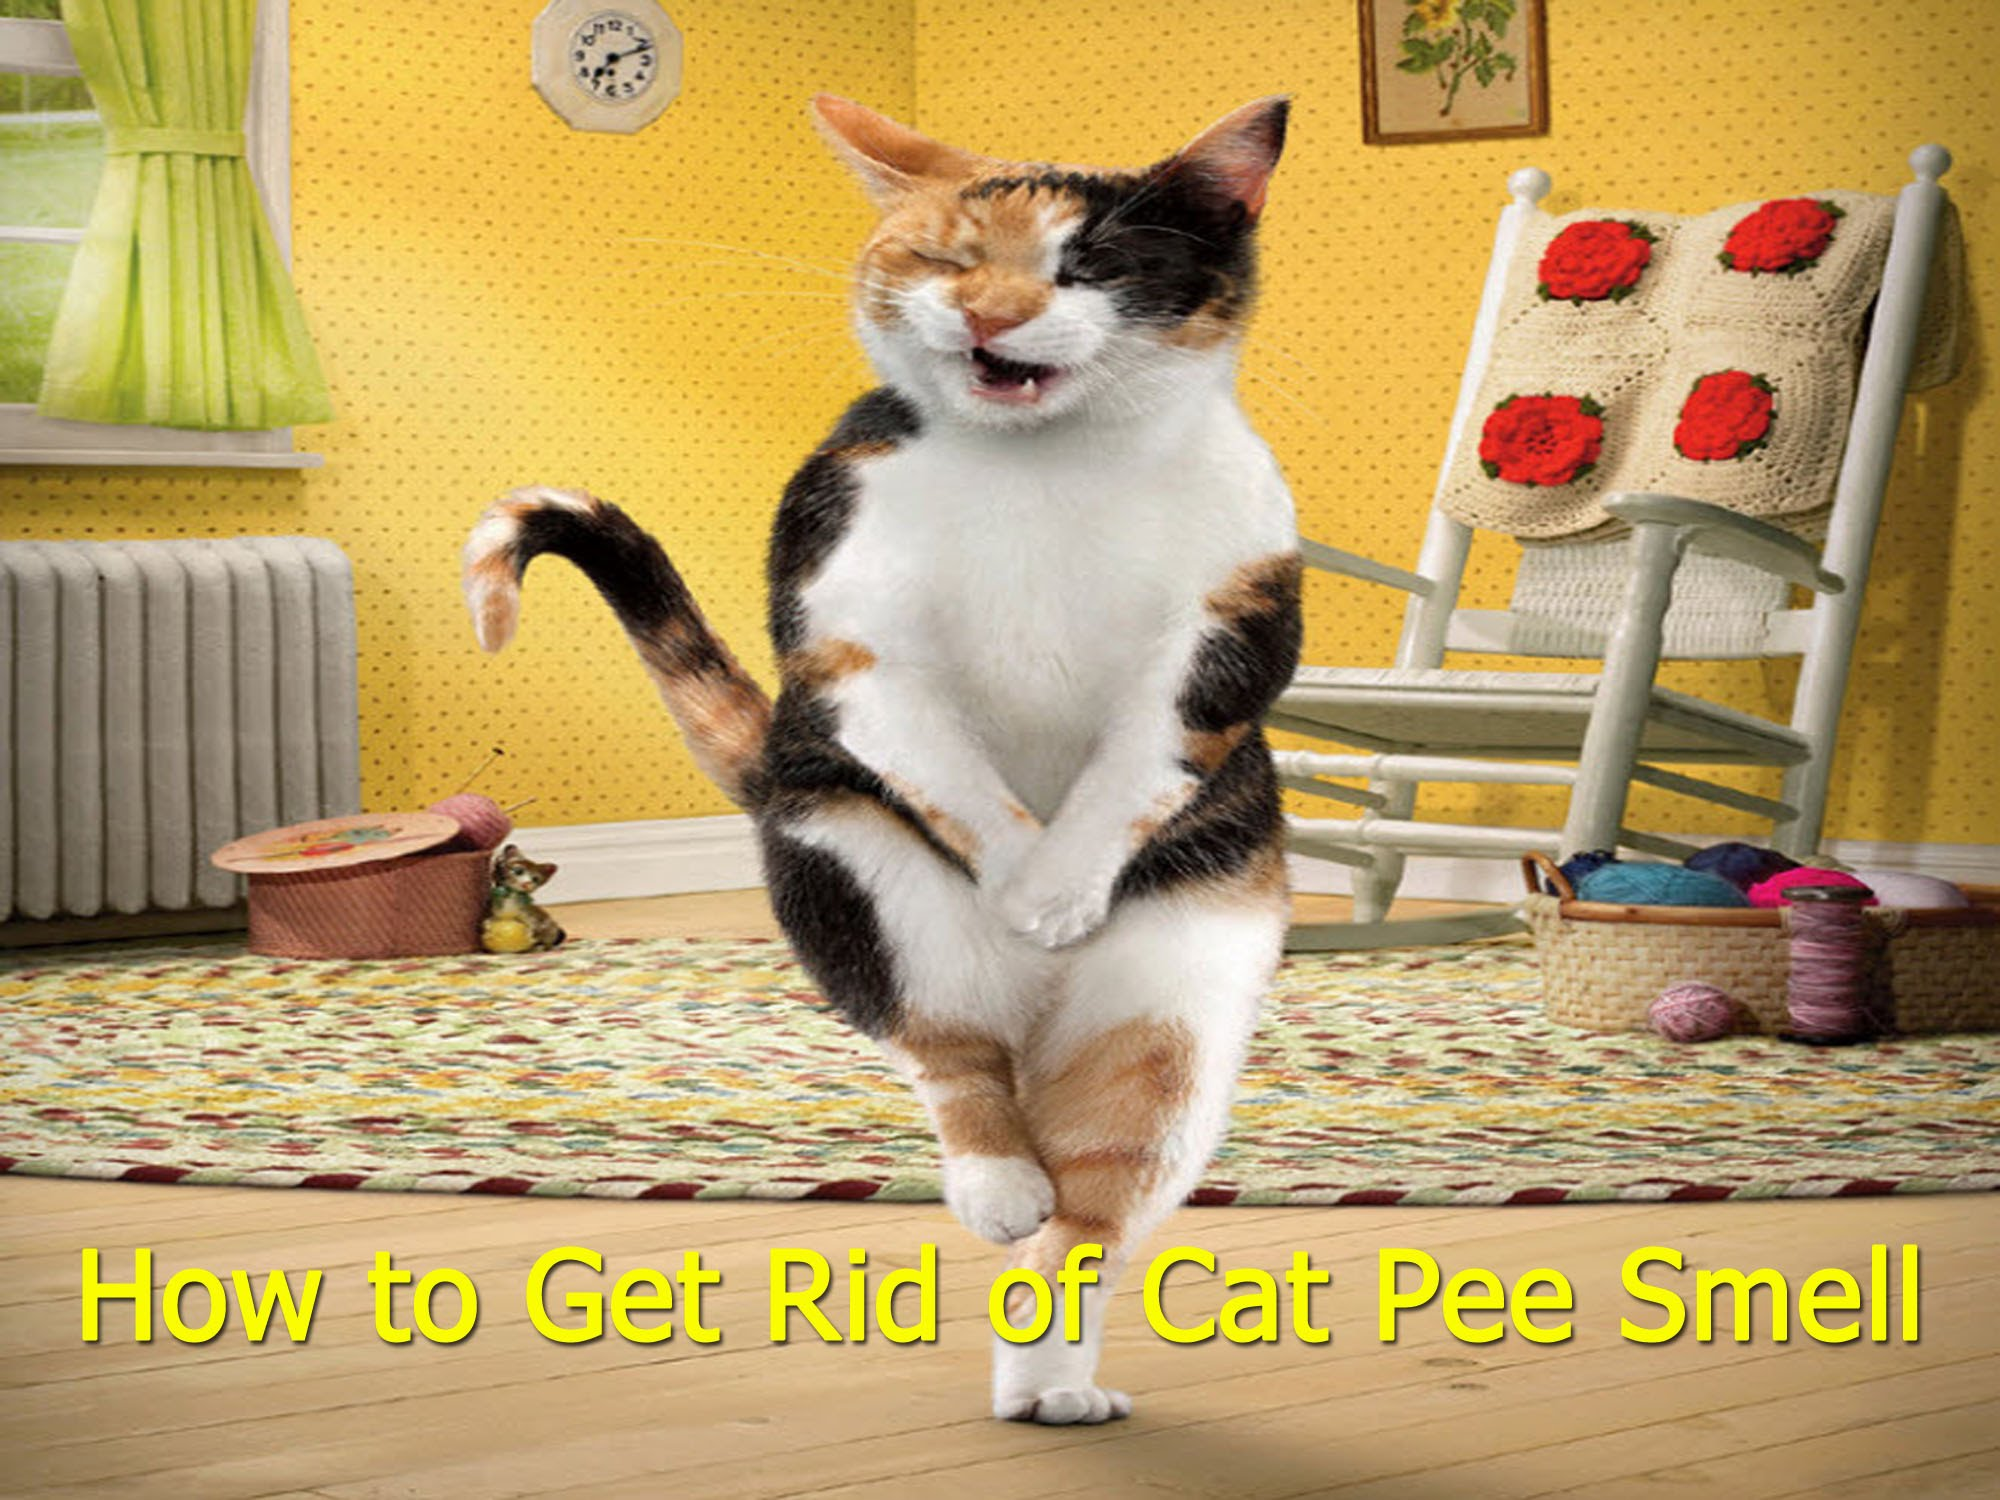 How to Get Cat Urine Smell Out of Clothes photo